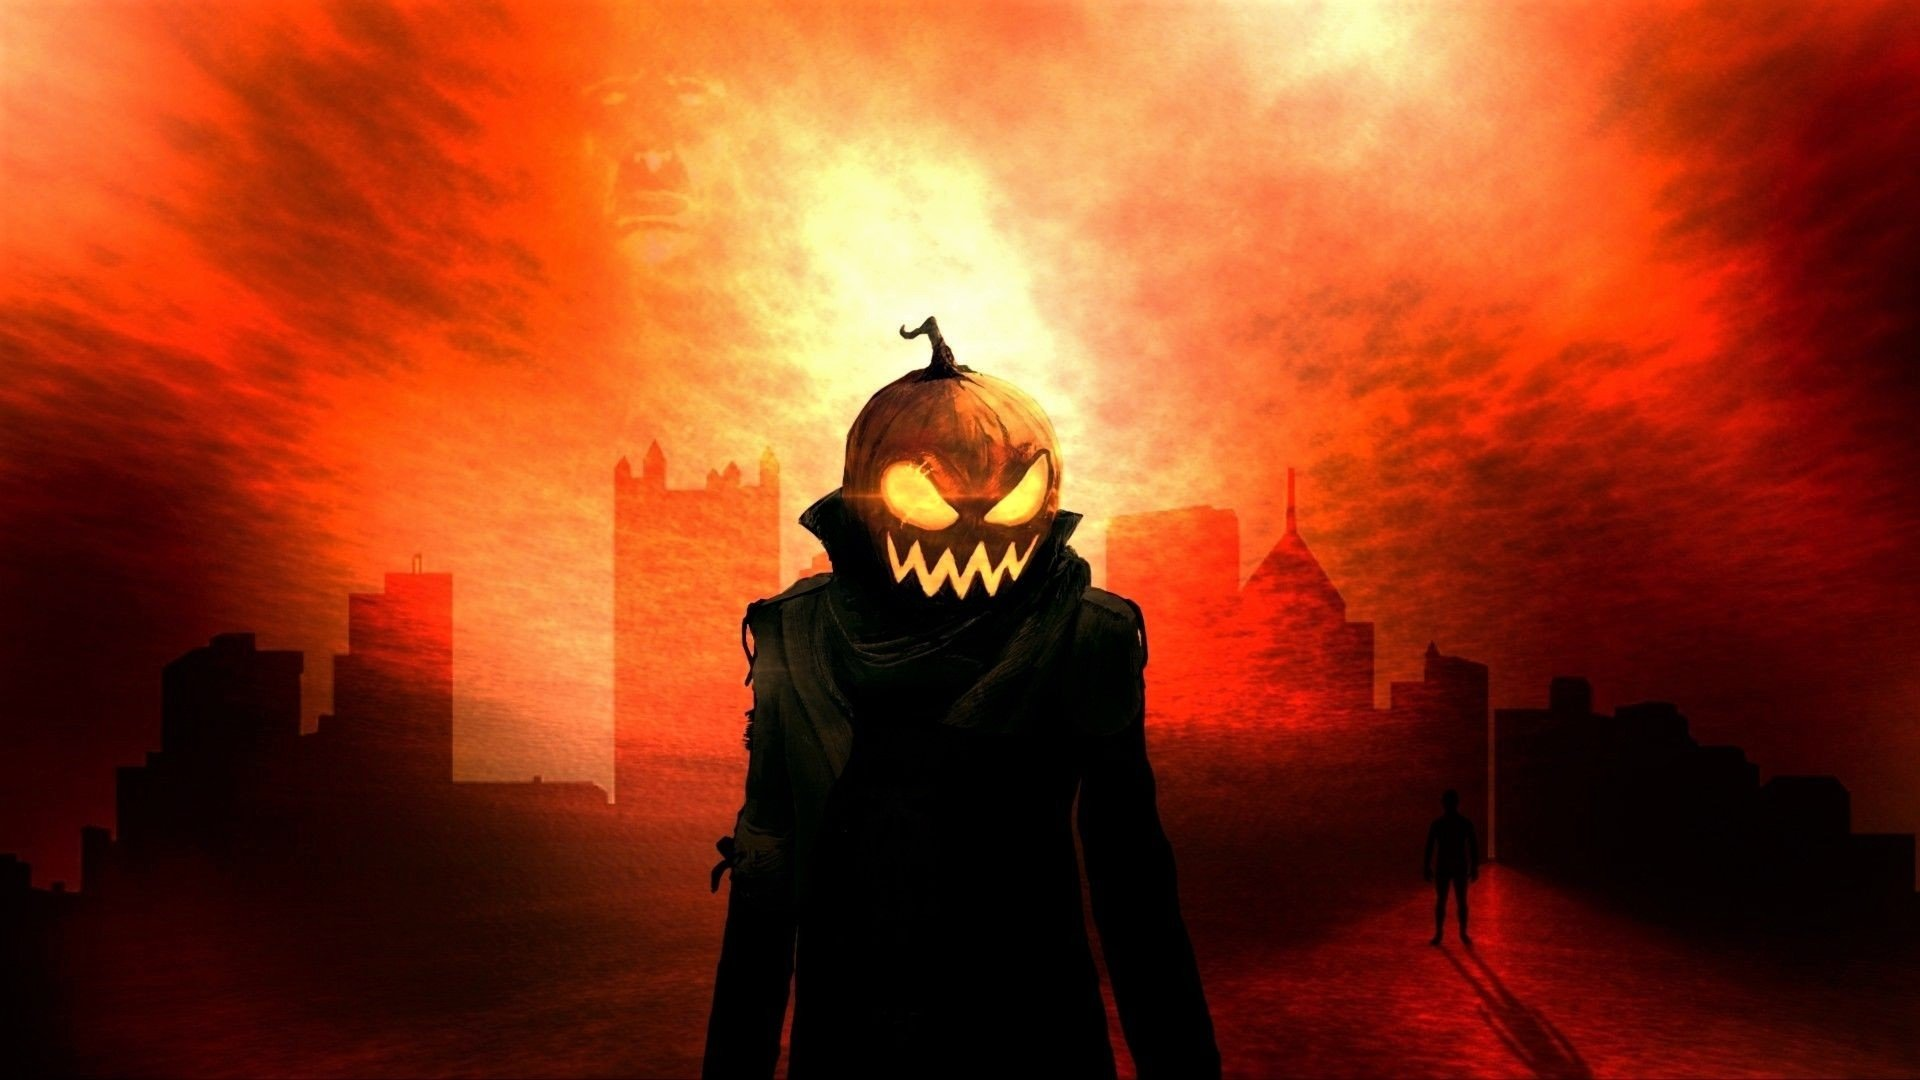 Holiday - Halloween  Holiday Jack-o'-lantern Pumpkin Head Man Coat Wallpaper